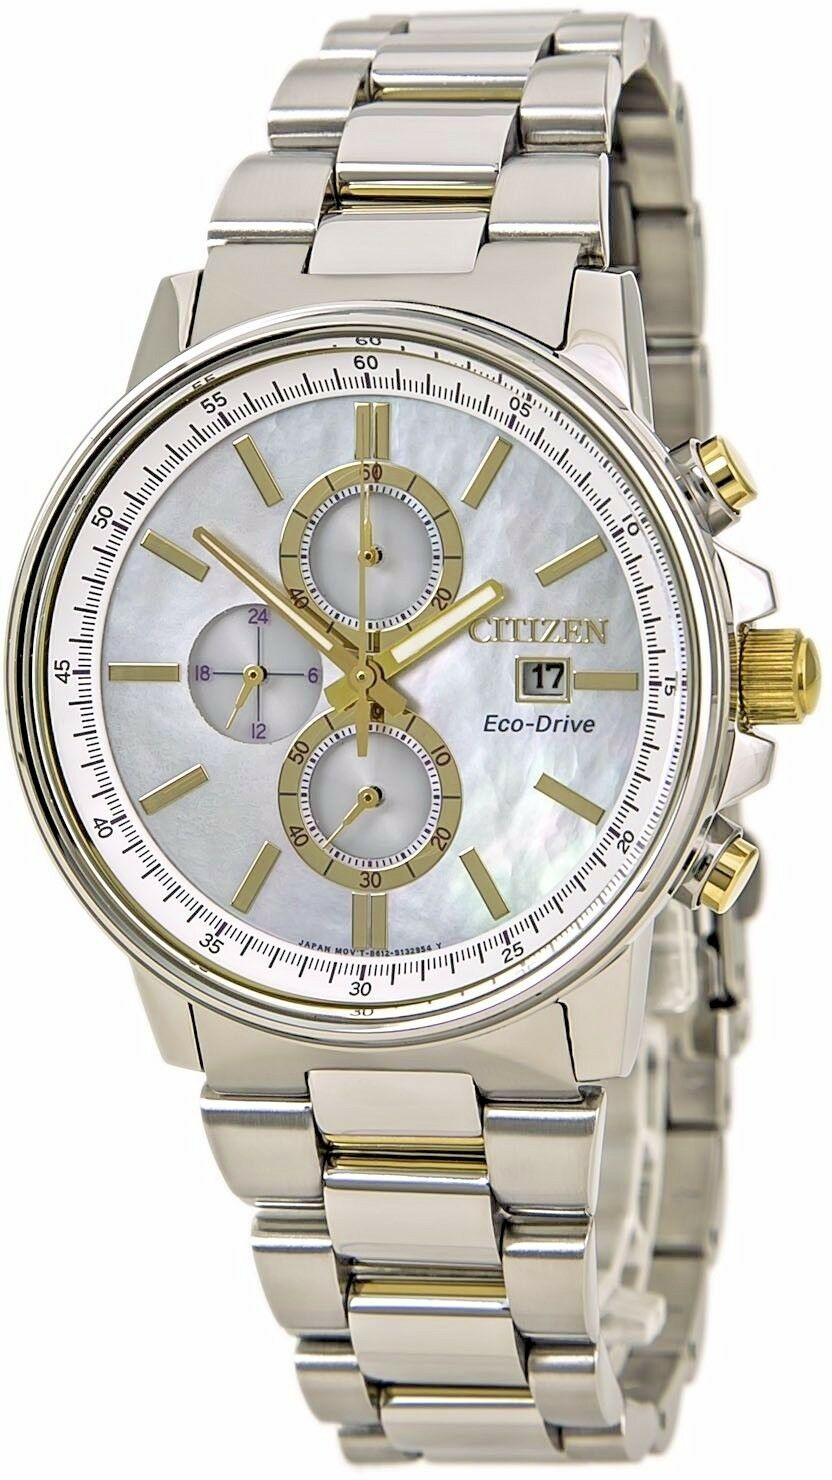 7b2495925c5 Details about Citizen Eco-Drive Women s FB3004-58 Chronograph Mother of  Pearl Dial 42mm Watch